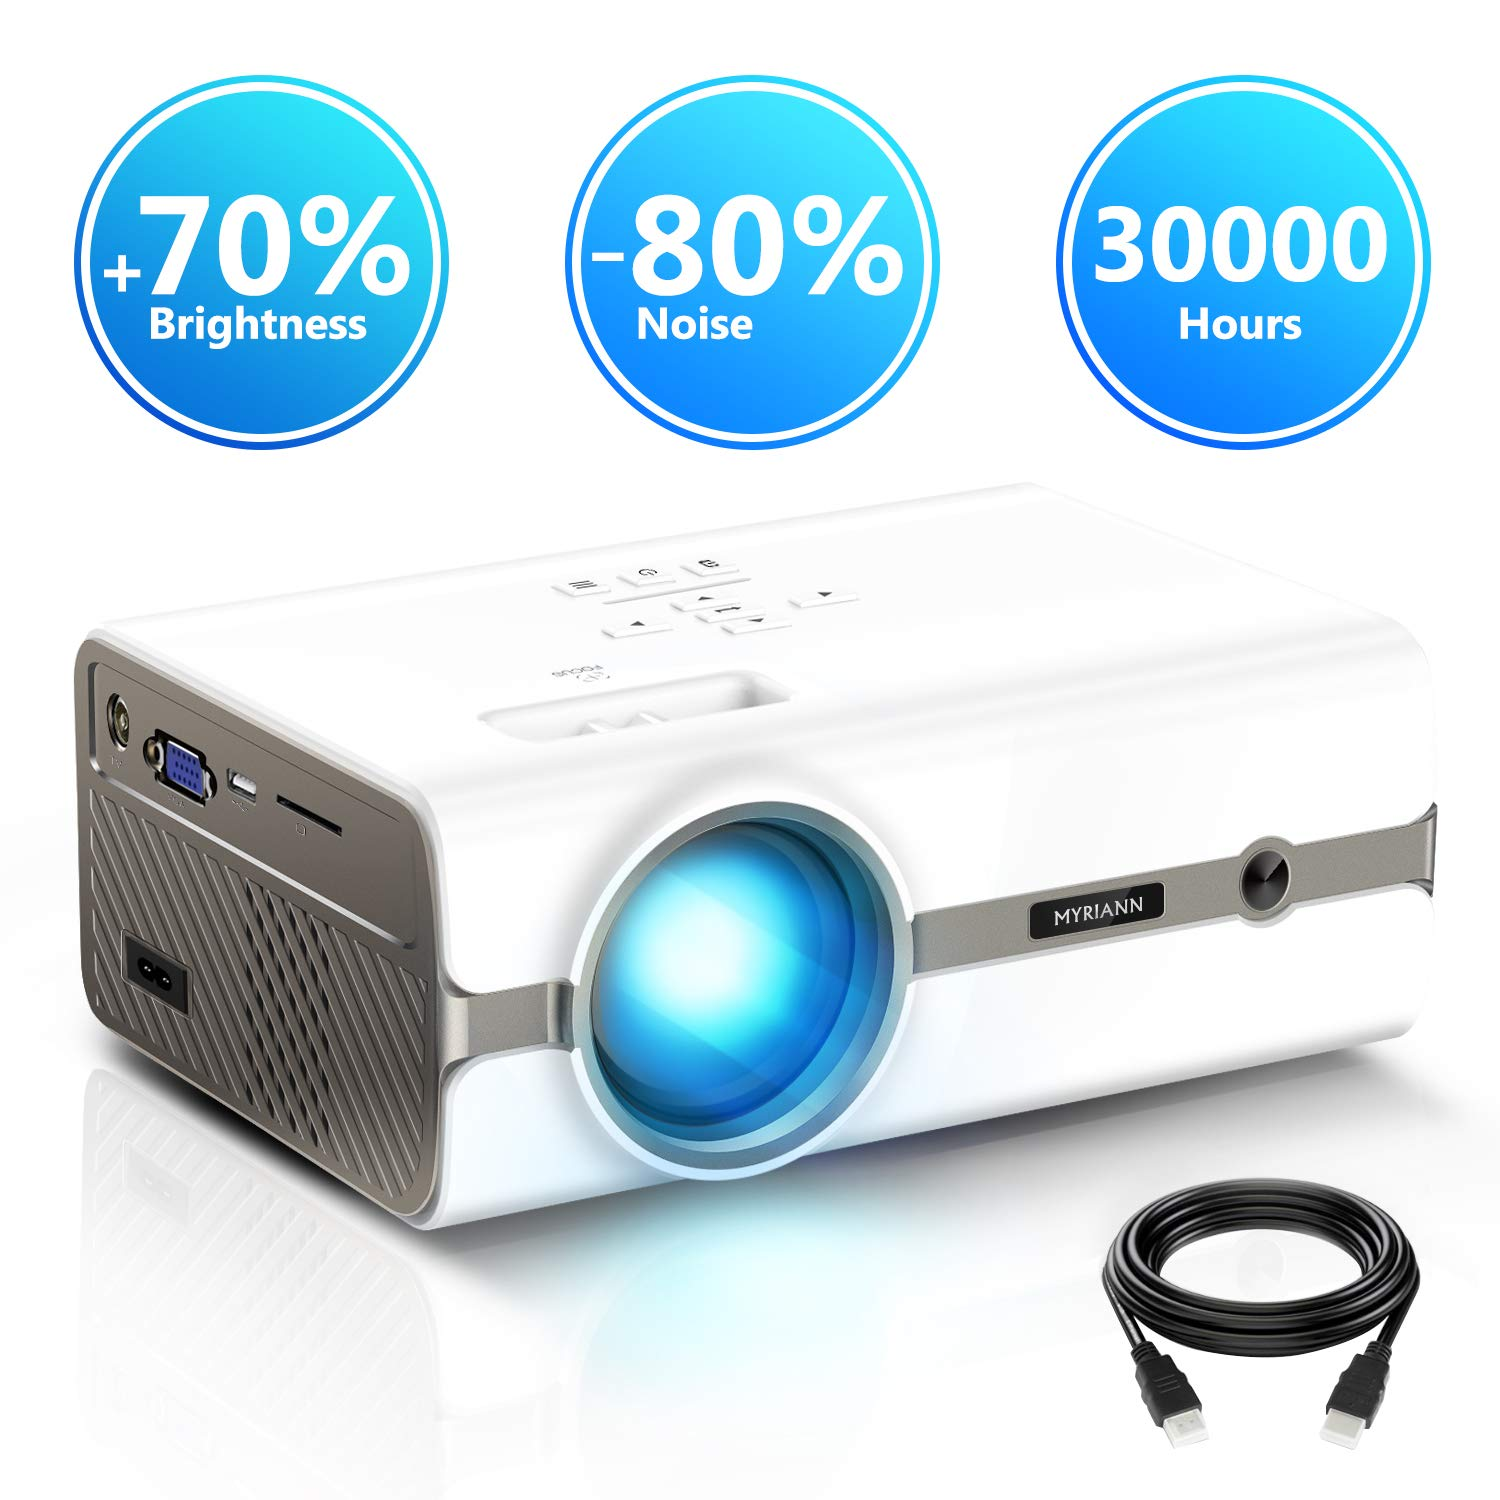 Projector,Myriann Portable Mini Multimedia Home Video LCD Projector Support 1080P for Home Theatre Support HD HDMI VGA AV USB Laptop iPhone/iPad Smartphone TV Stick Xbox,2018 Newest Upgraded